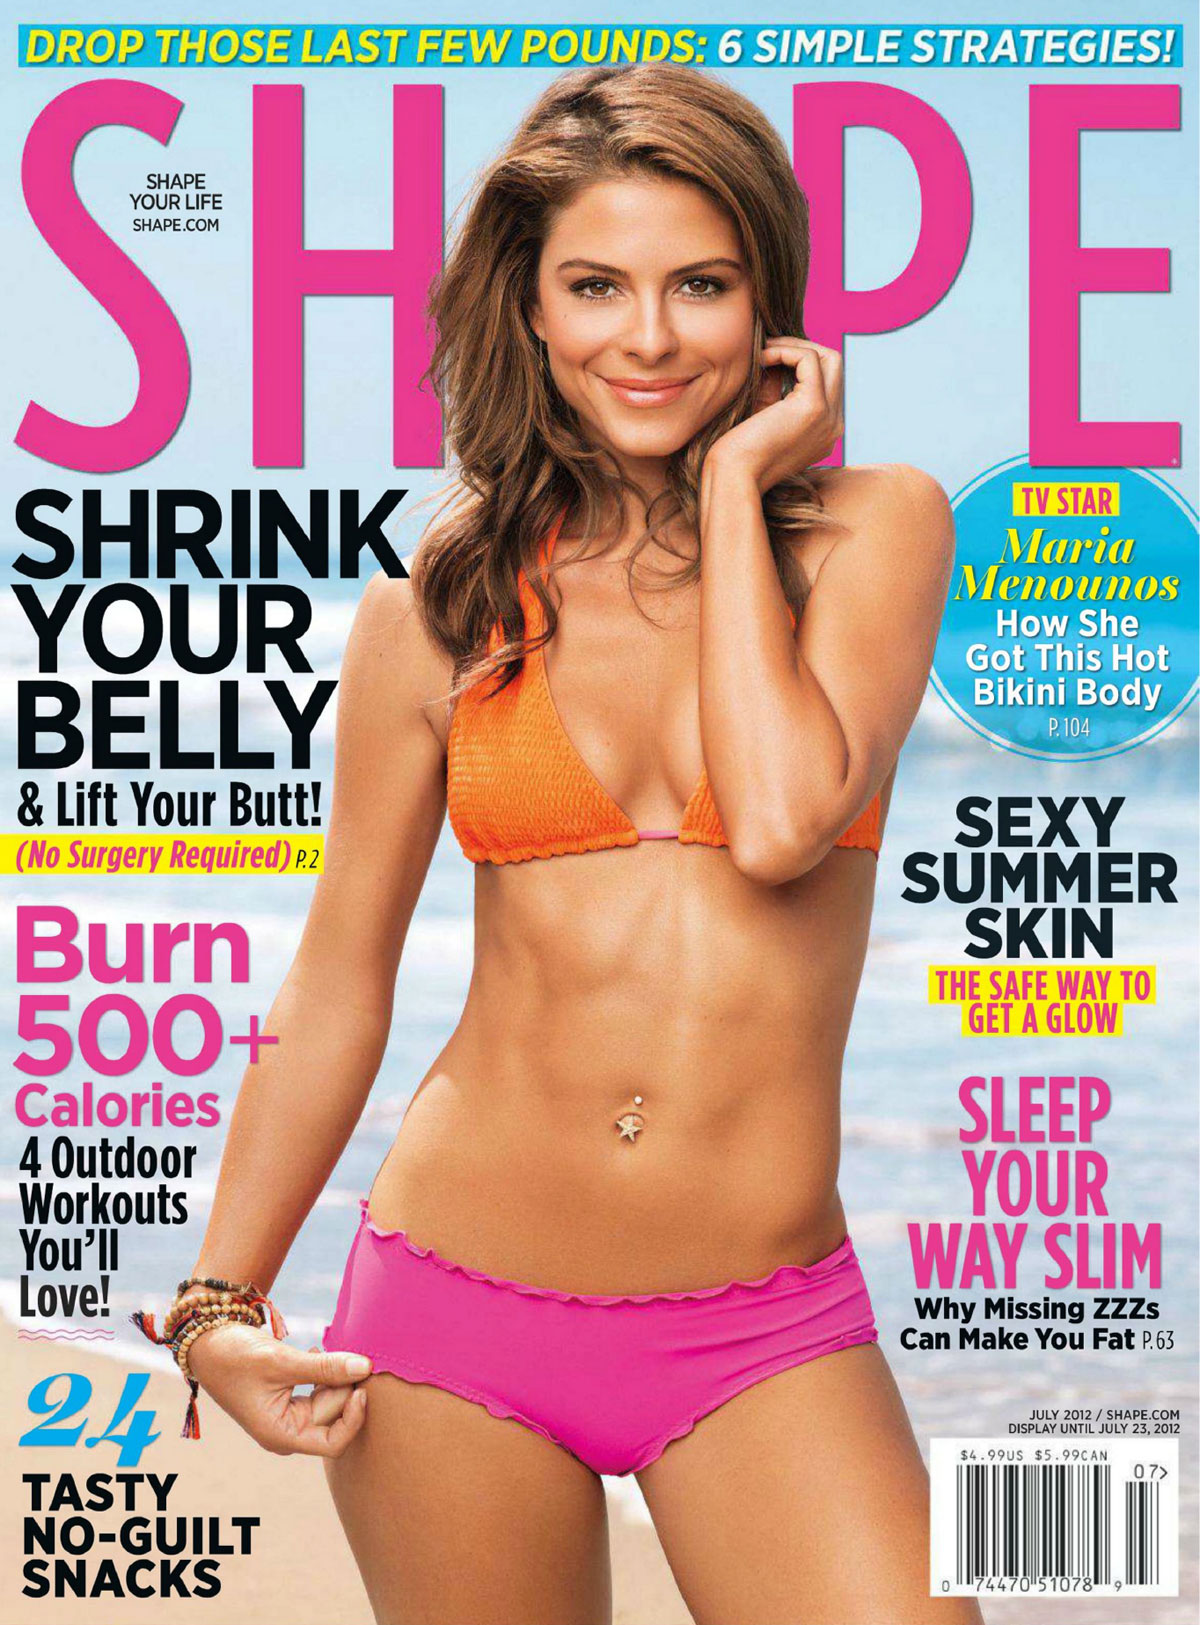 Resources, money saving tips, and tricks from Shape Magazine